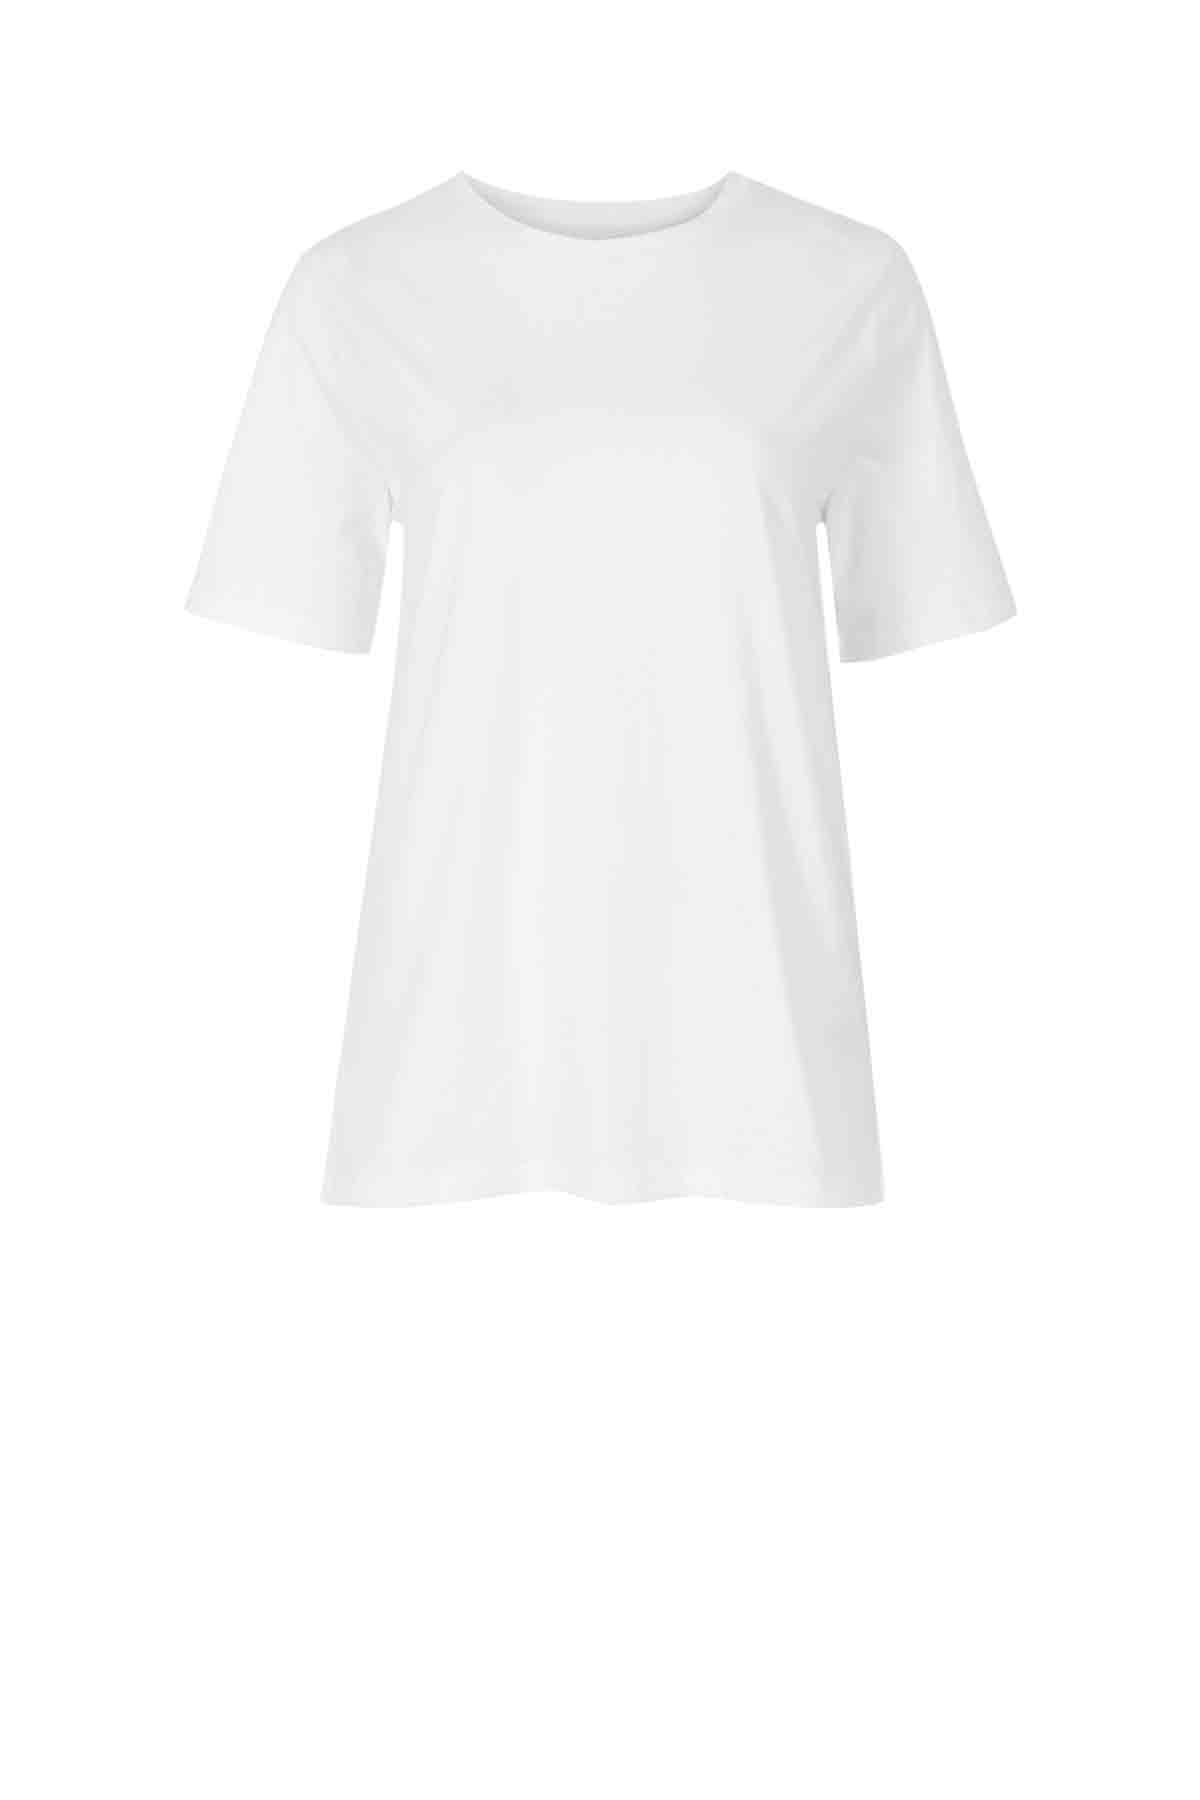 9cb4aa4381dfcd Every piece in Holly Willoughby x Marks & Spencer collection